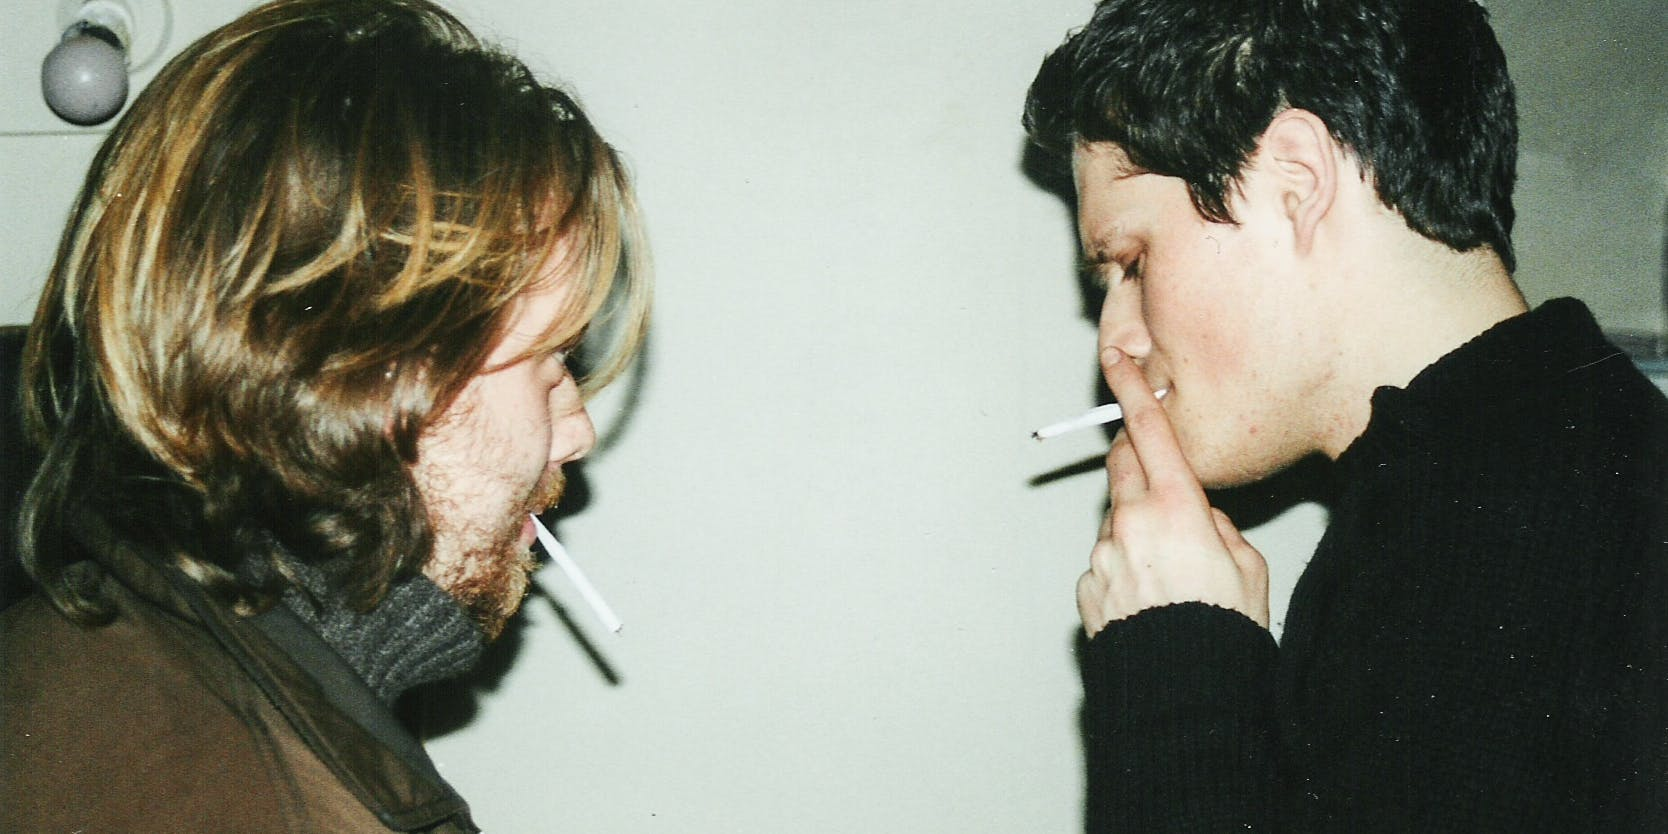 secondhand weed smoke more harmful than cigarettes